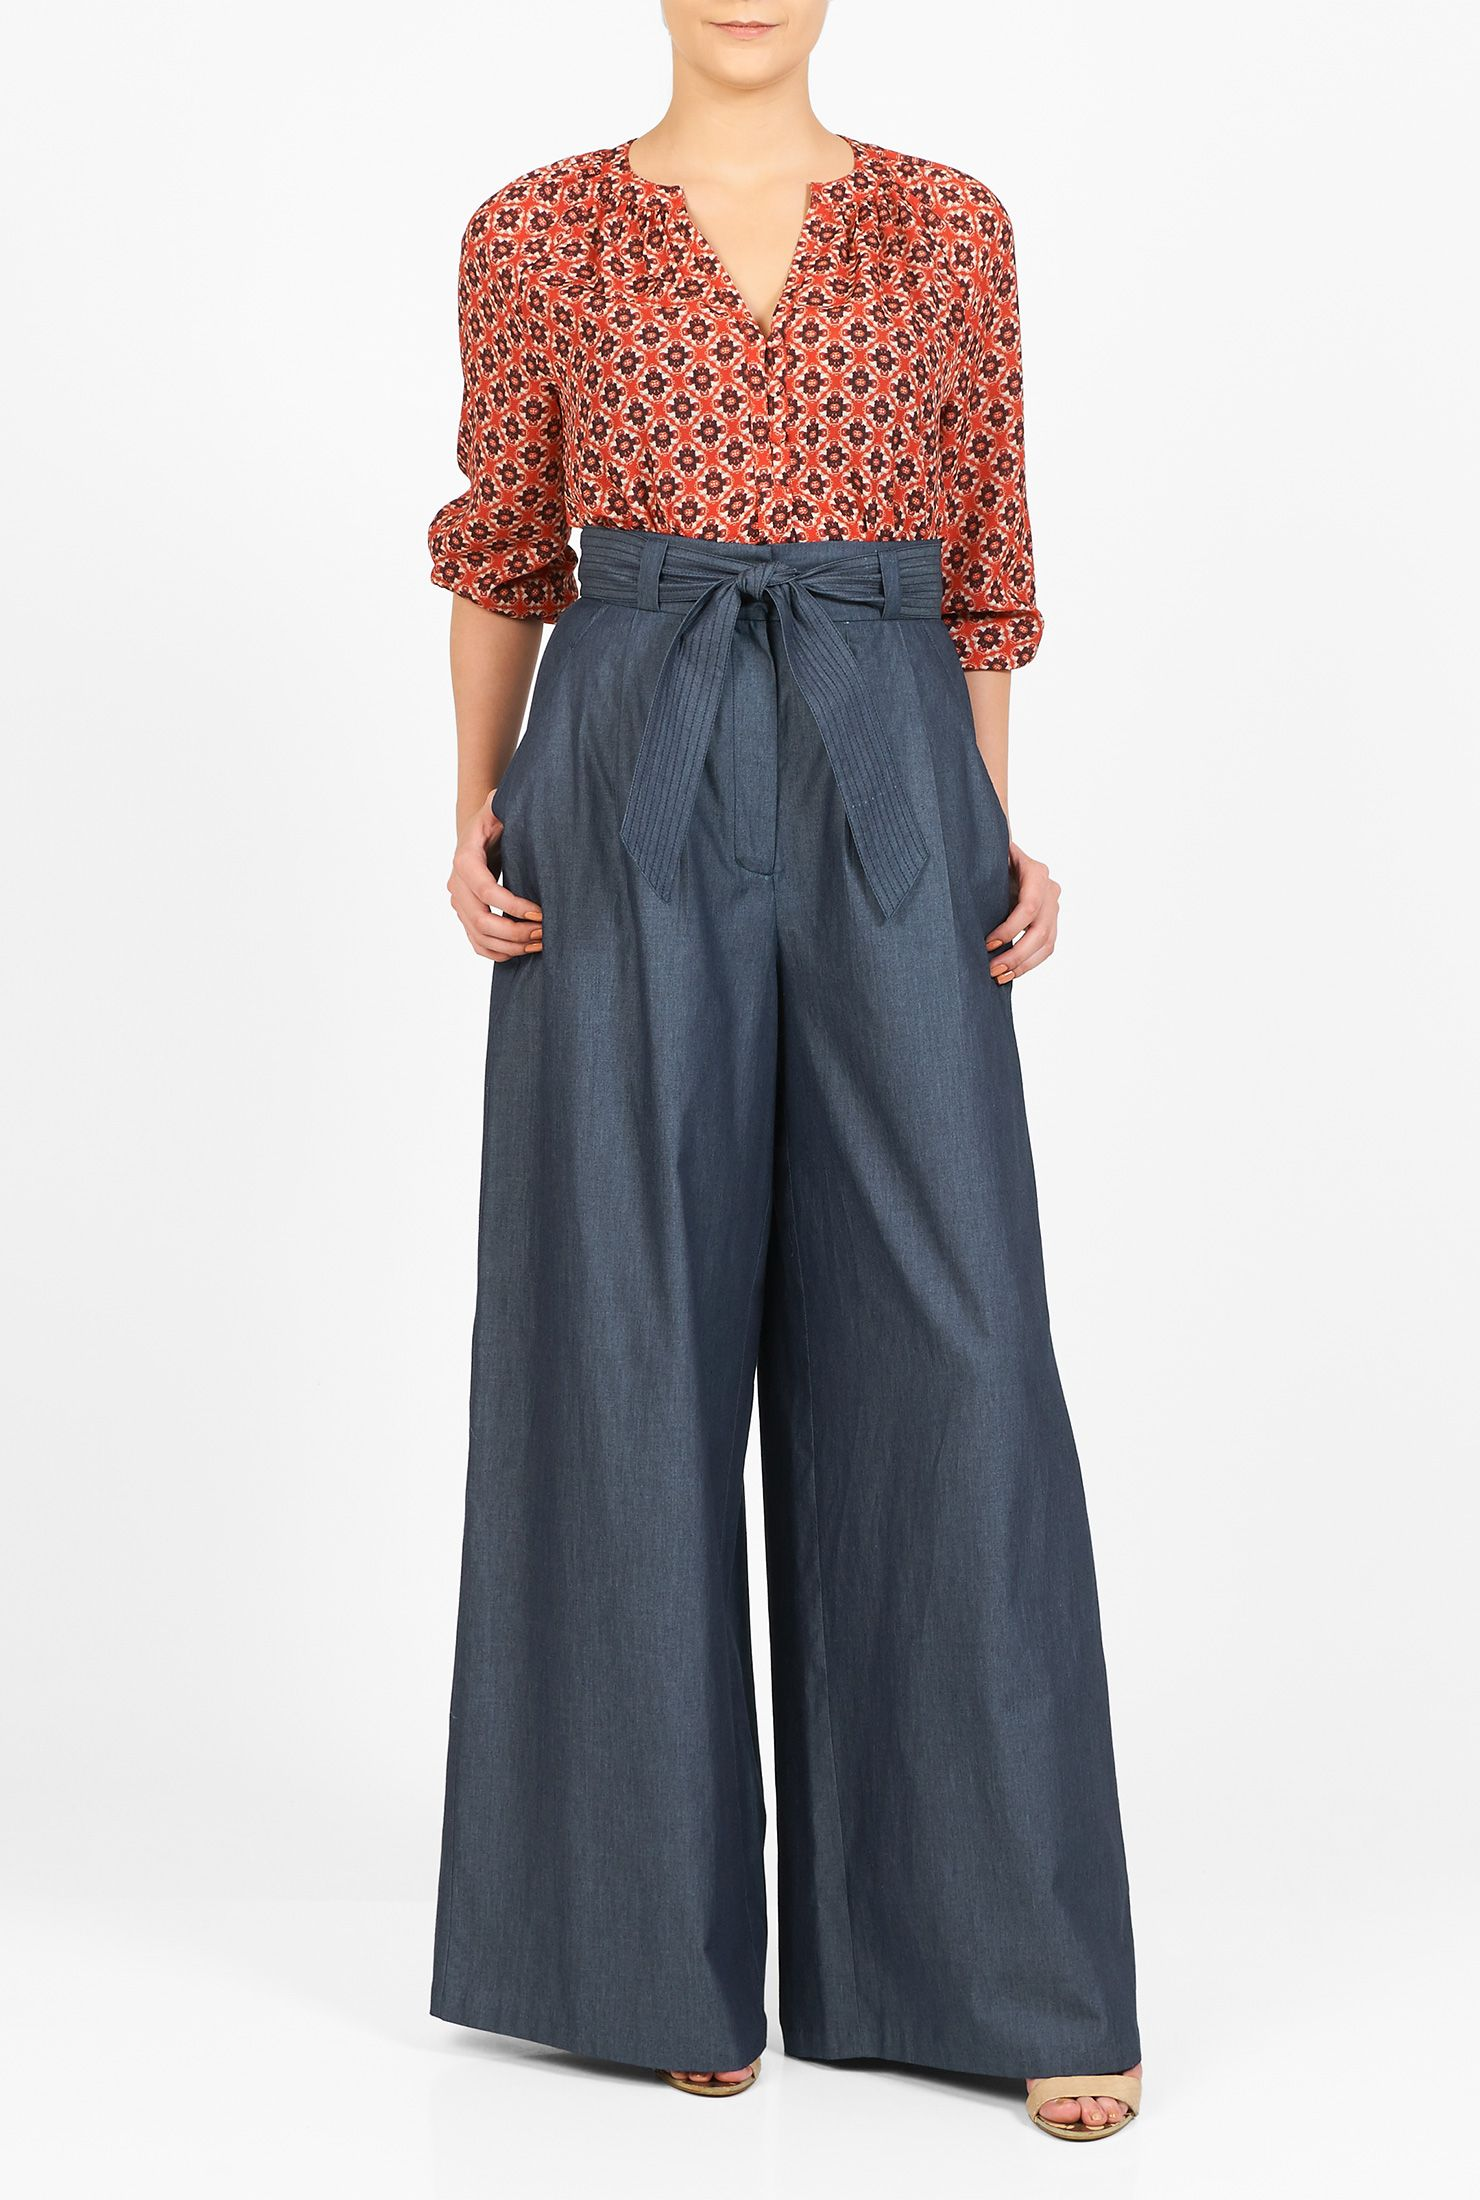 High waisted denim palazzo pants